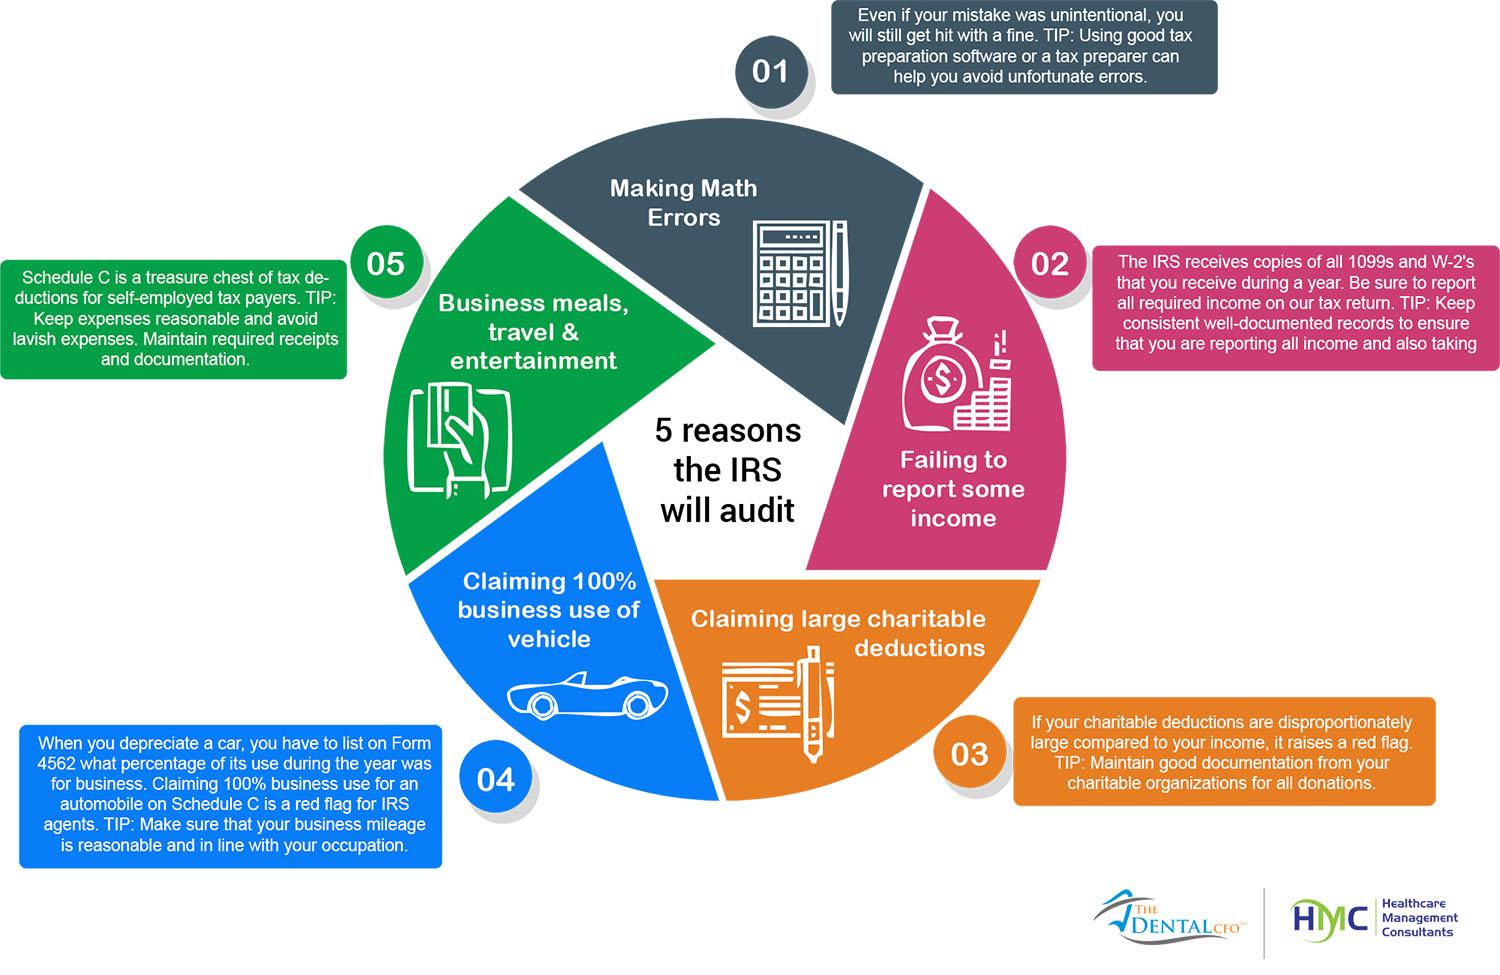 Five 5 reason the IRS will audit your business